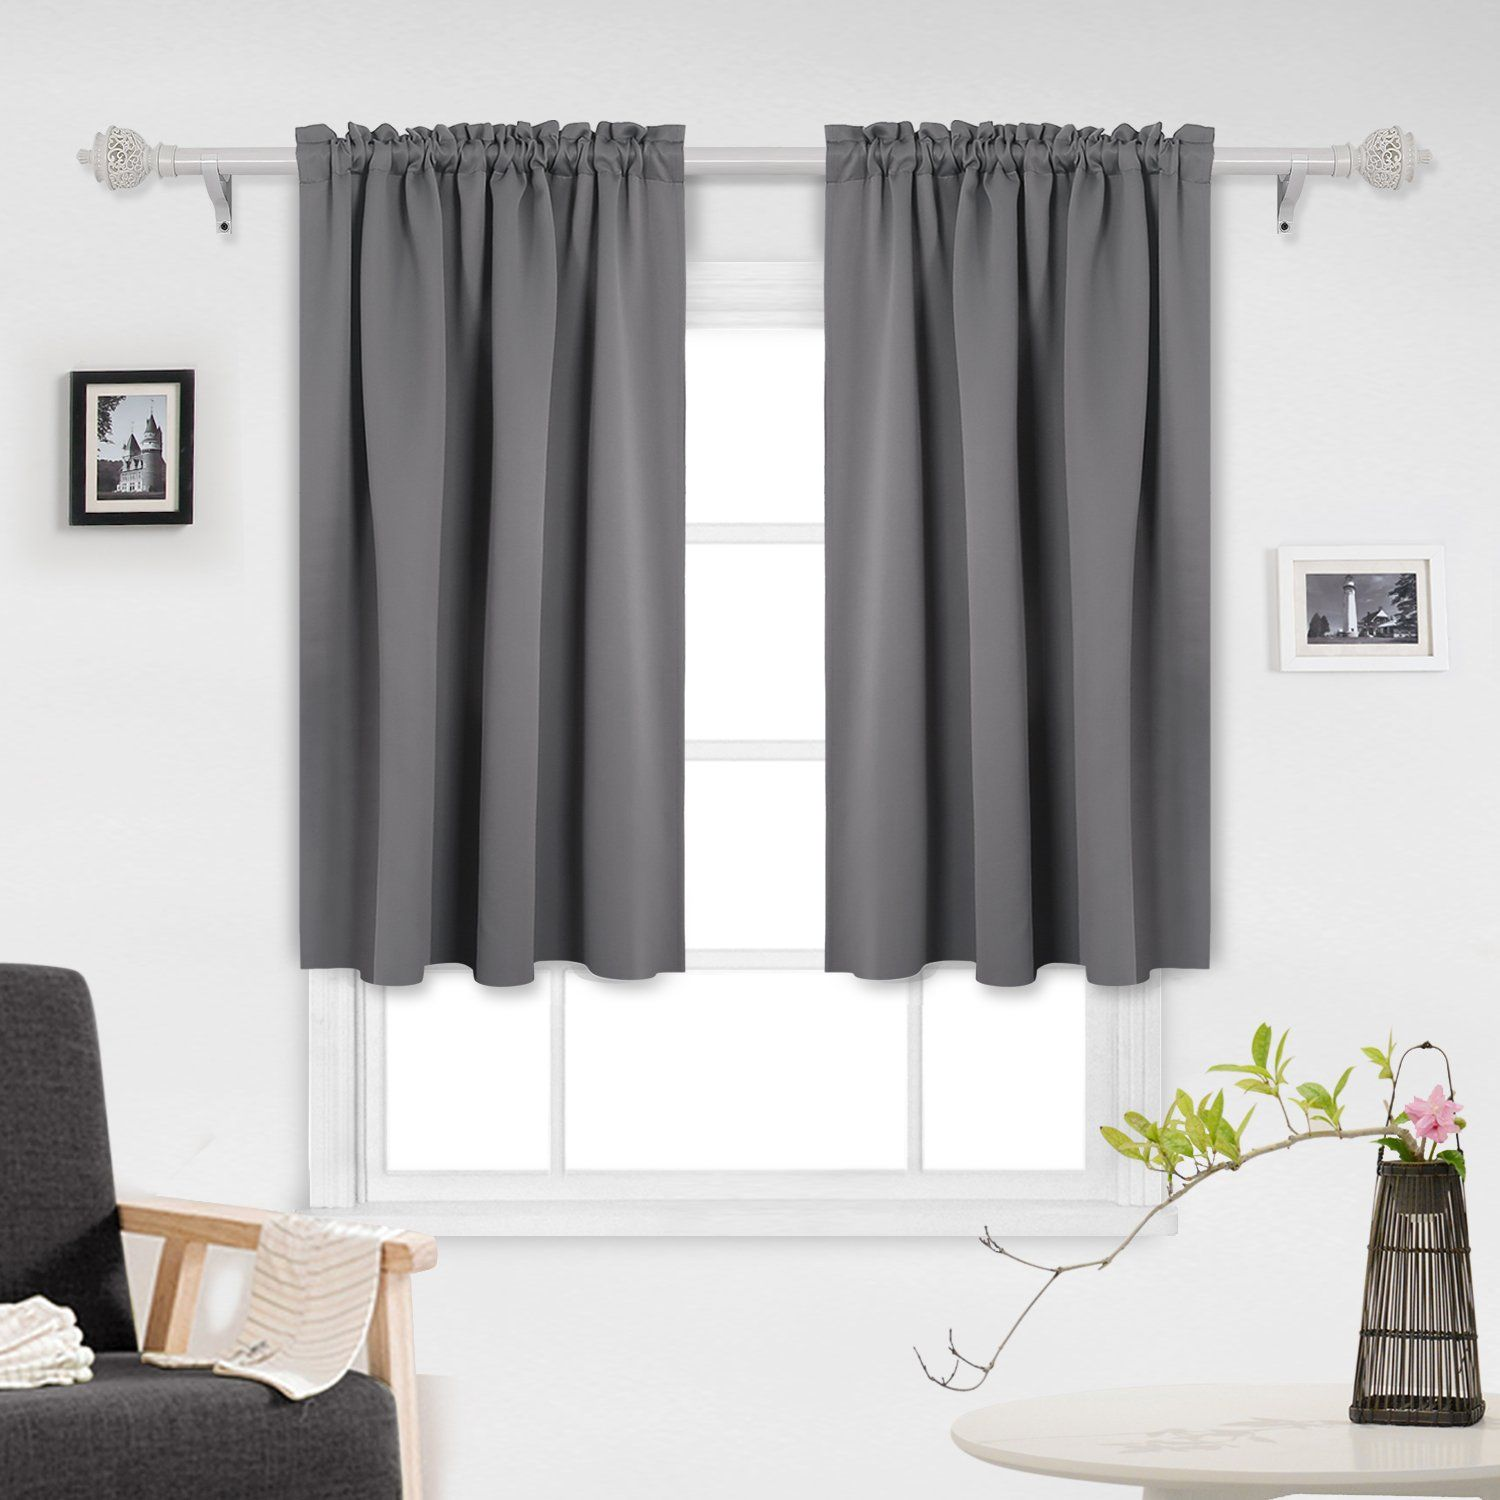 Deconovo Gray Blackout Curtains Rod Pocket Thermal Curtains Outdoor